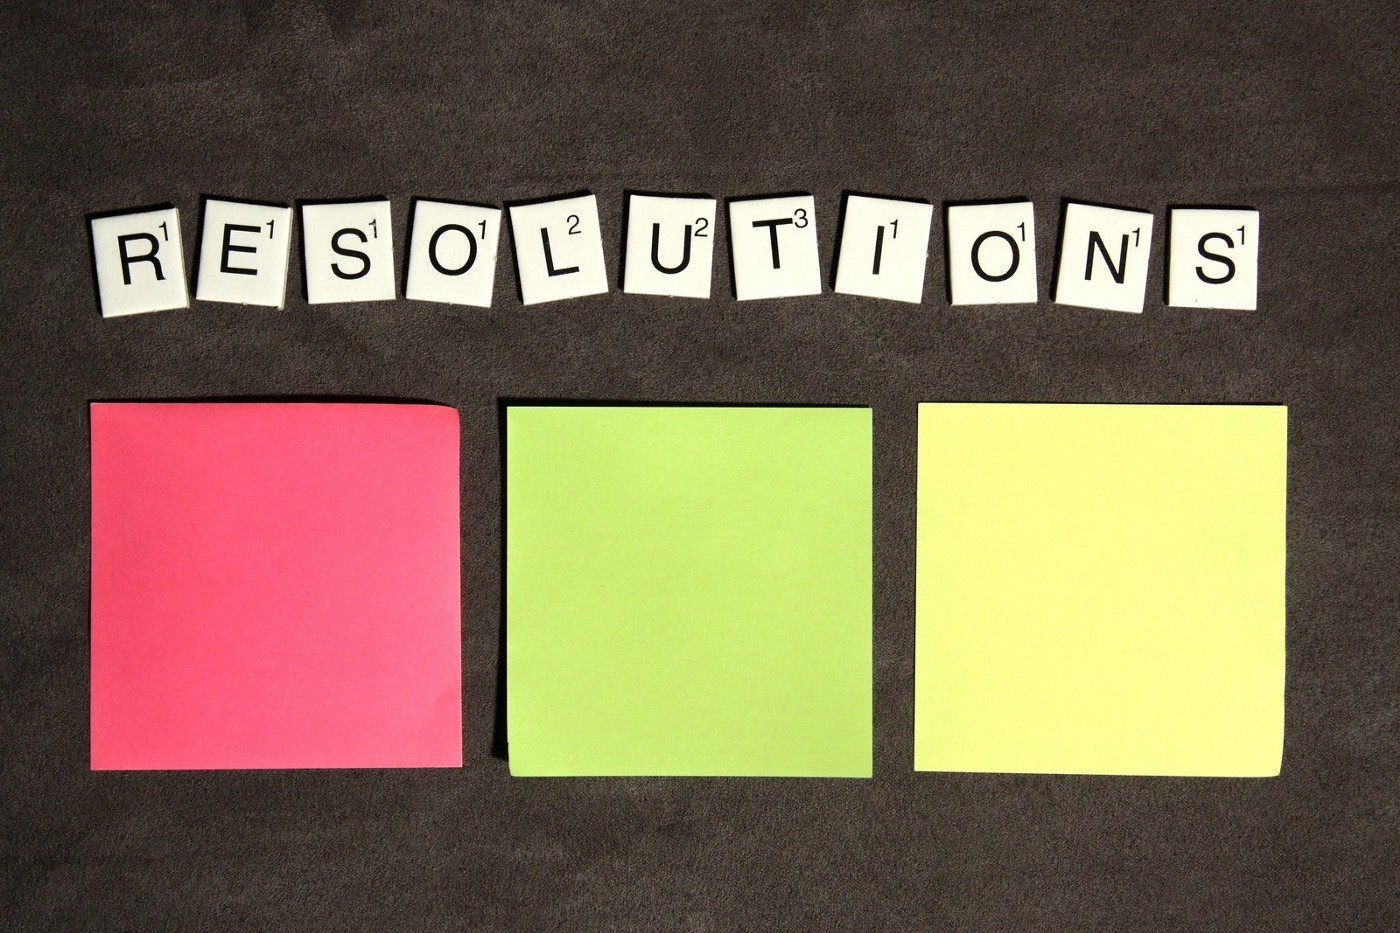 scrabble tiles spelling the word resolutions